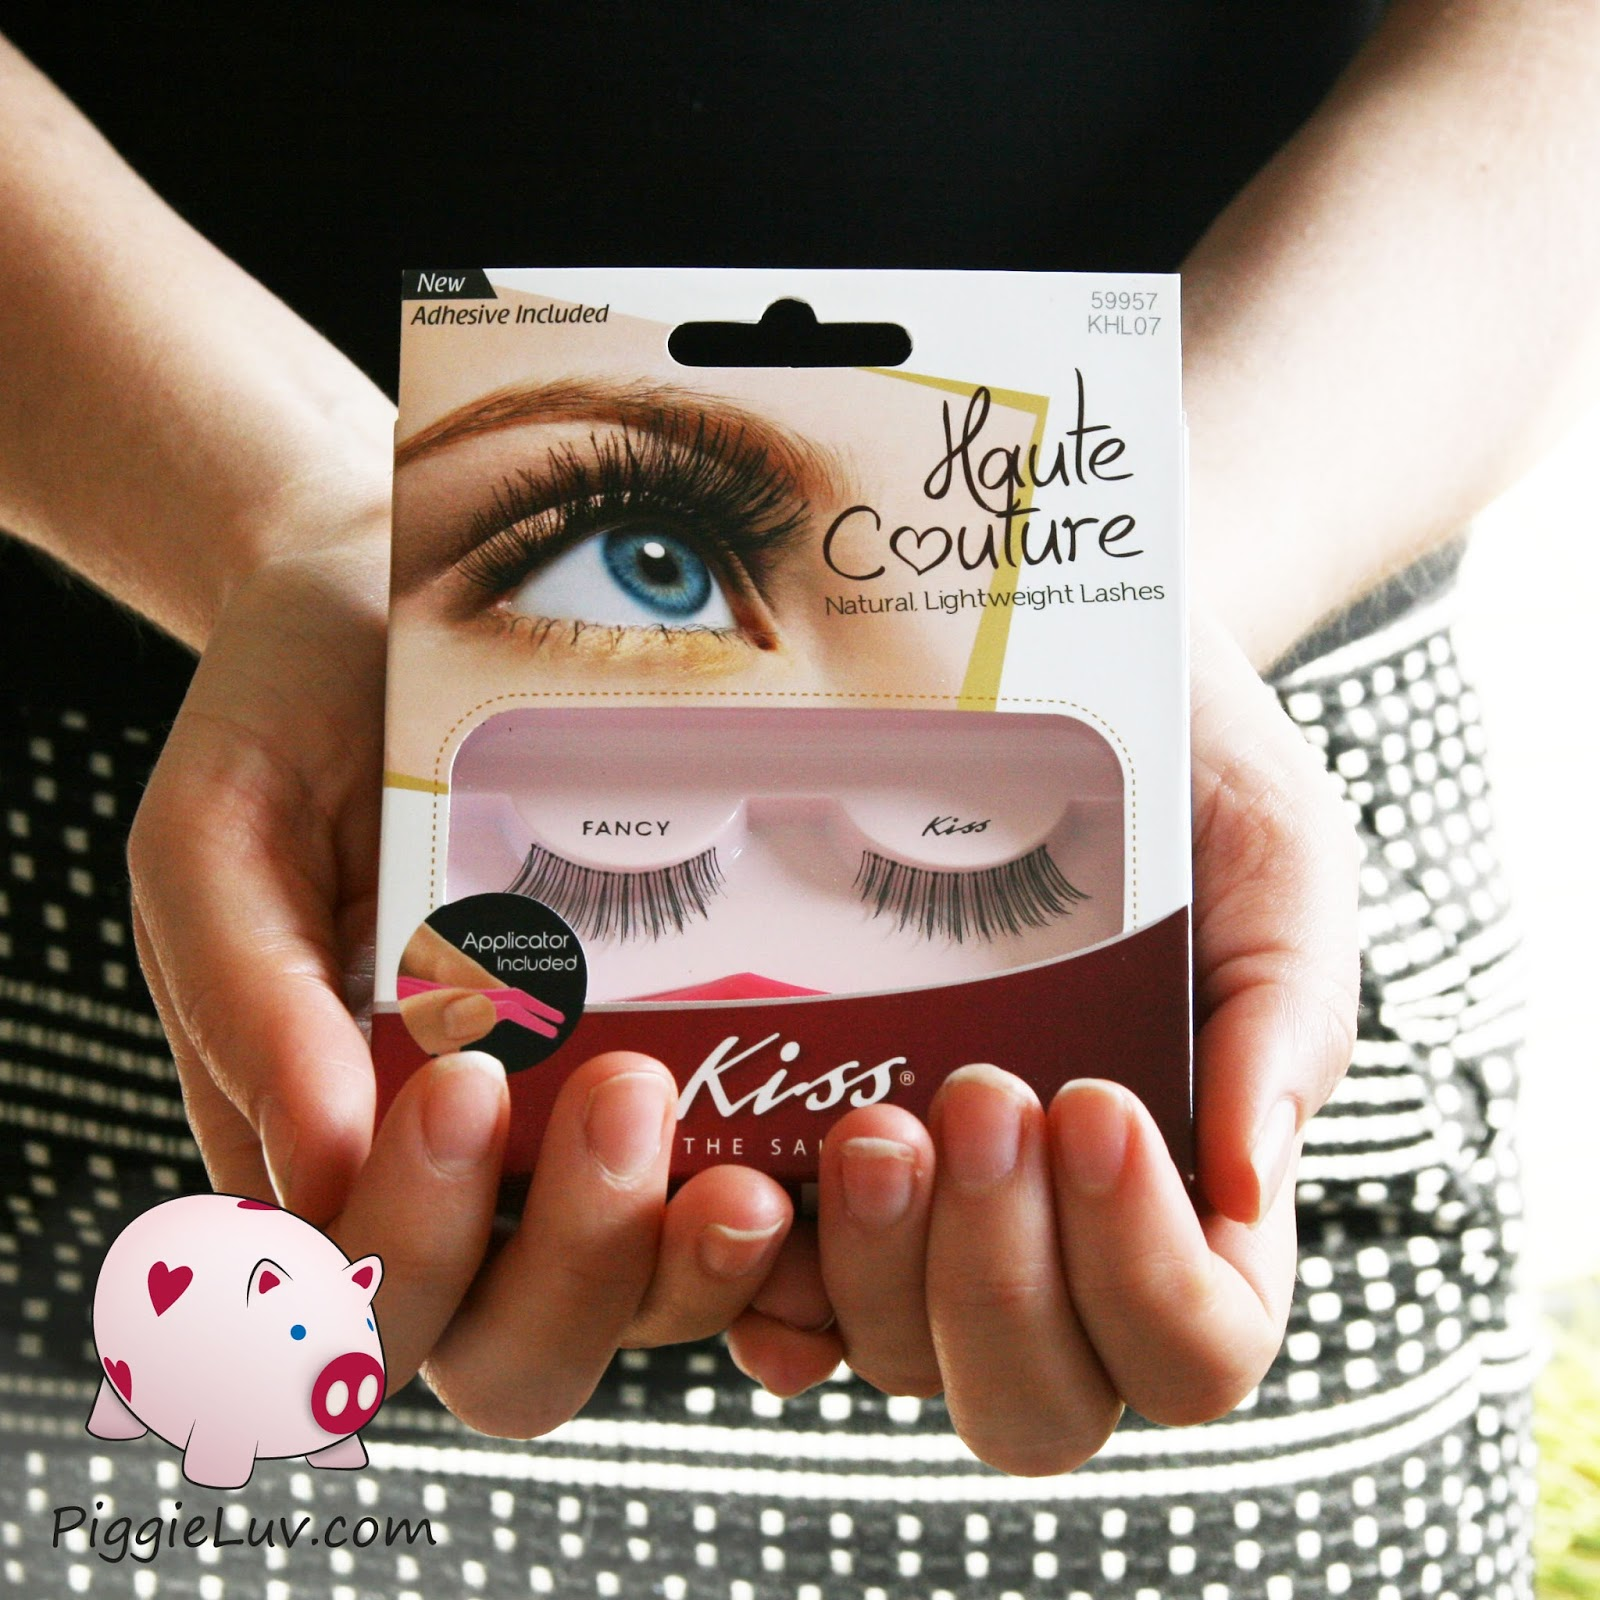 b07e7569907 PiggieLuv: Kiss Haute Couture fake eyelashes (plus some shampoo samples)